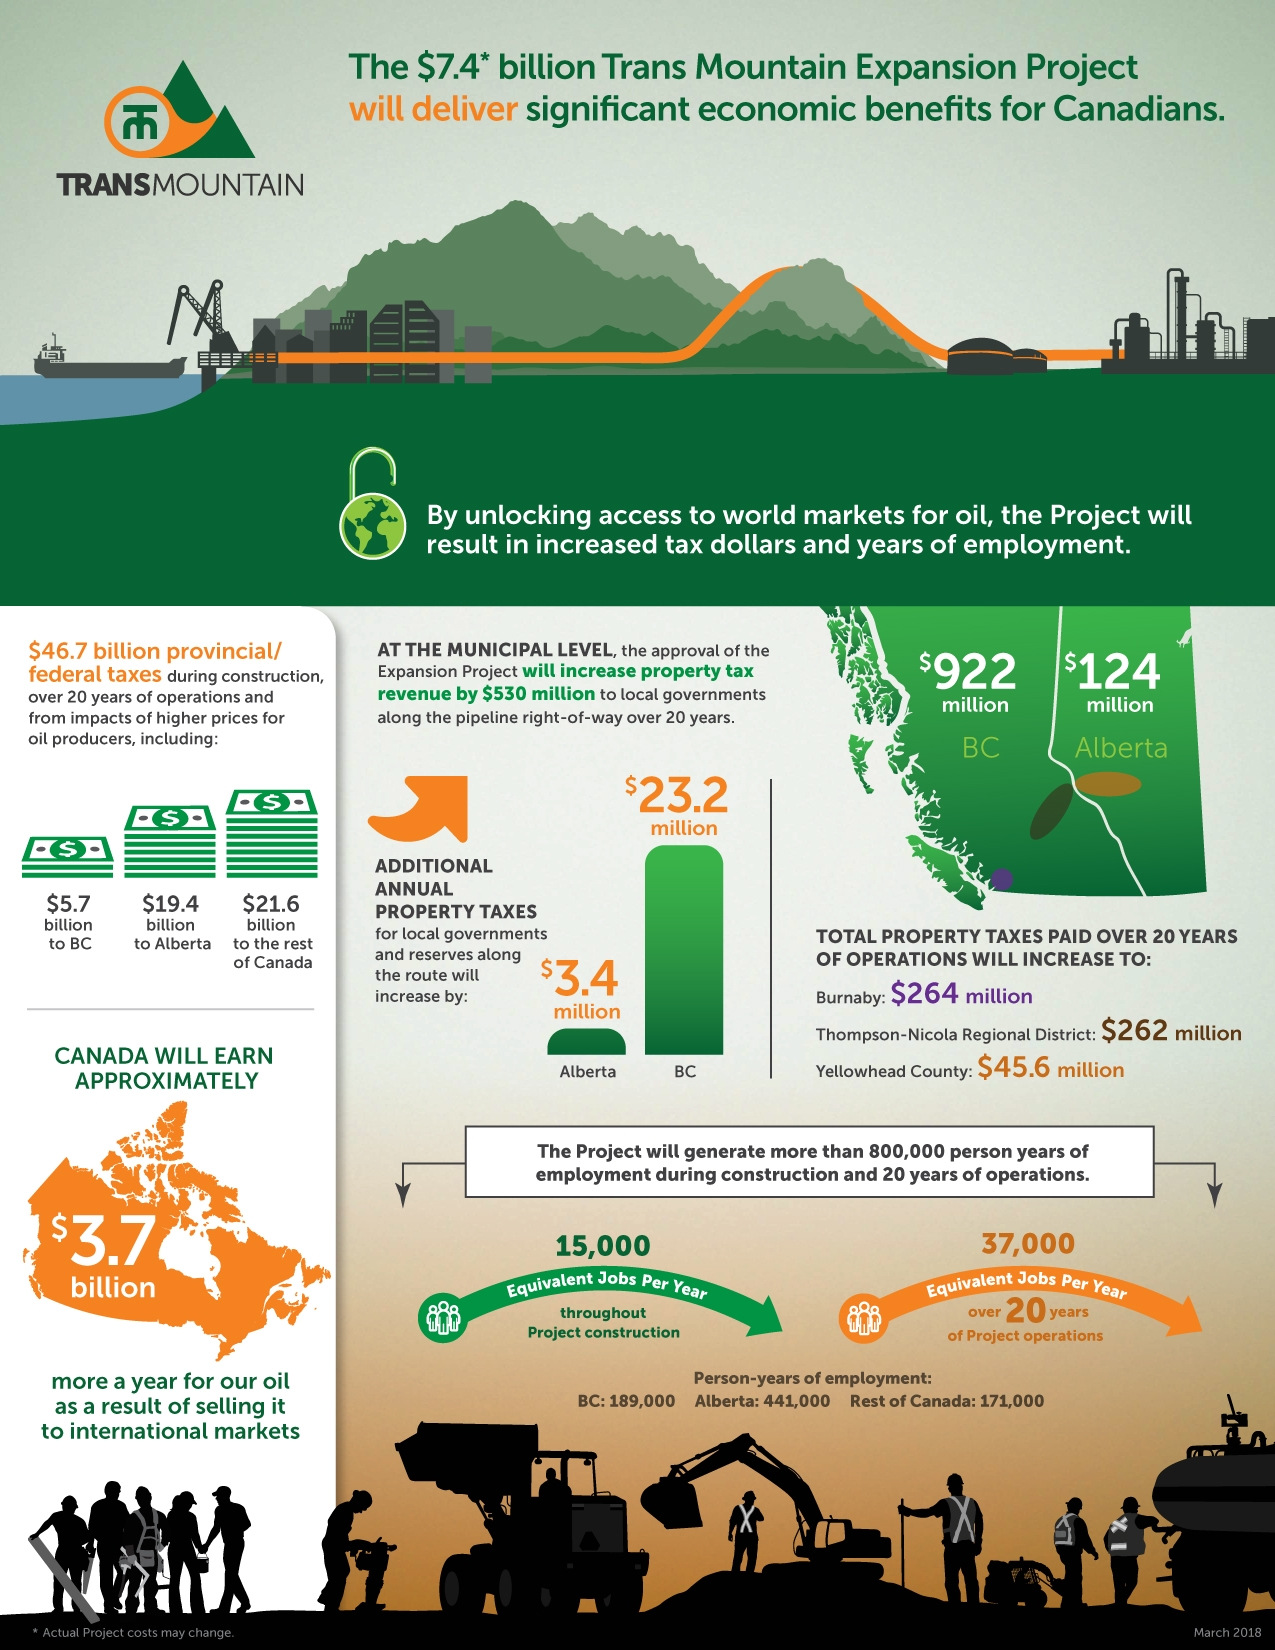 Project Benefits - Trans Mountain